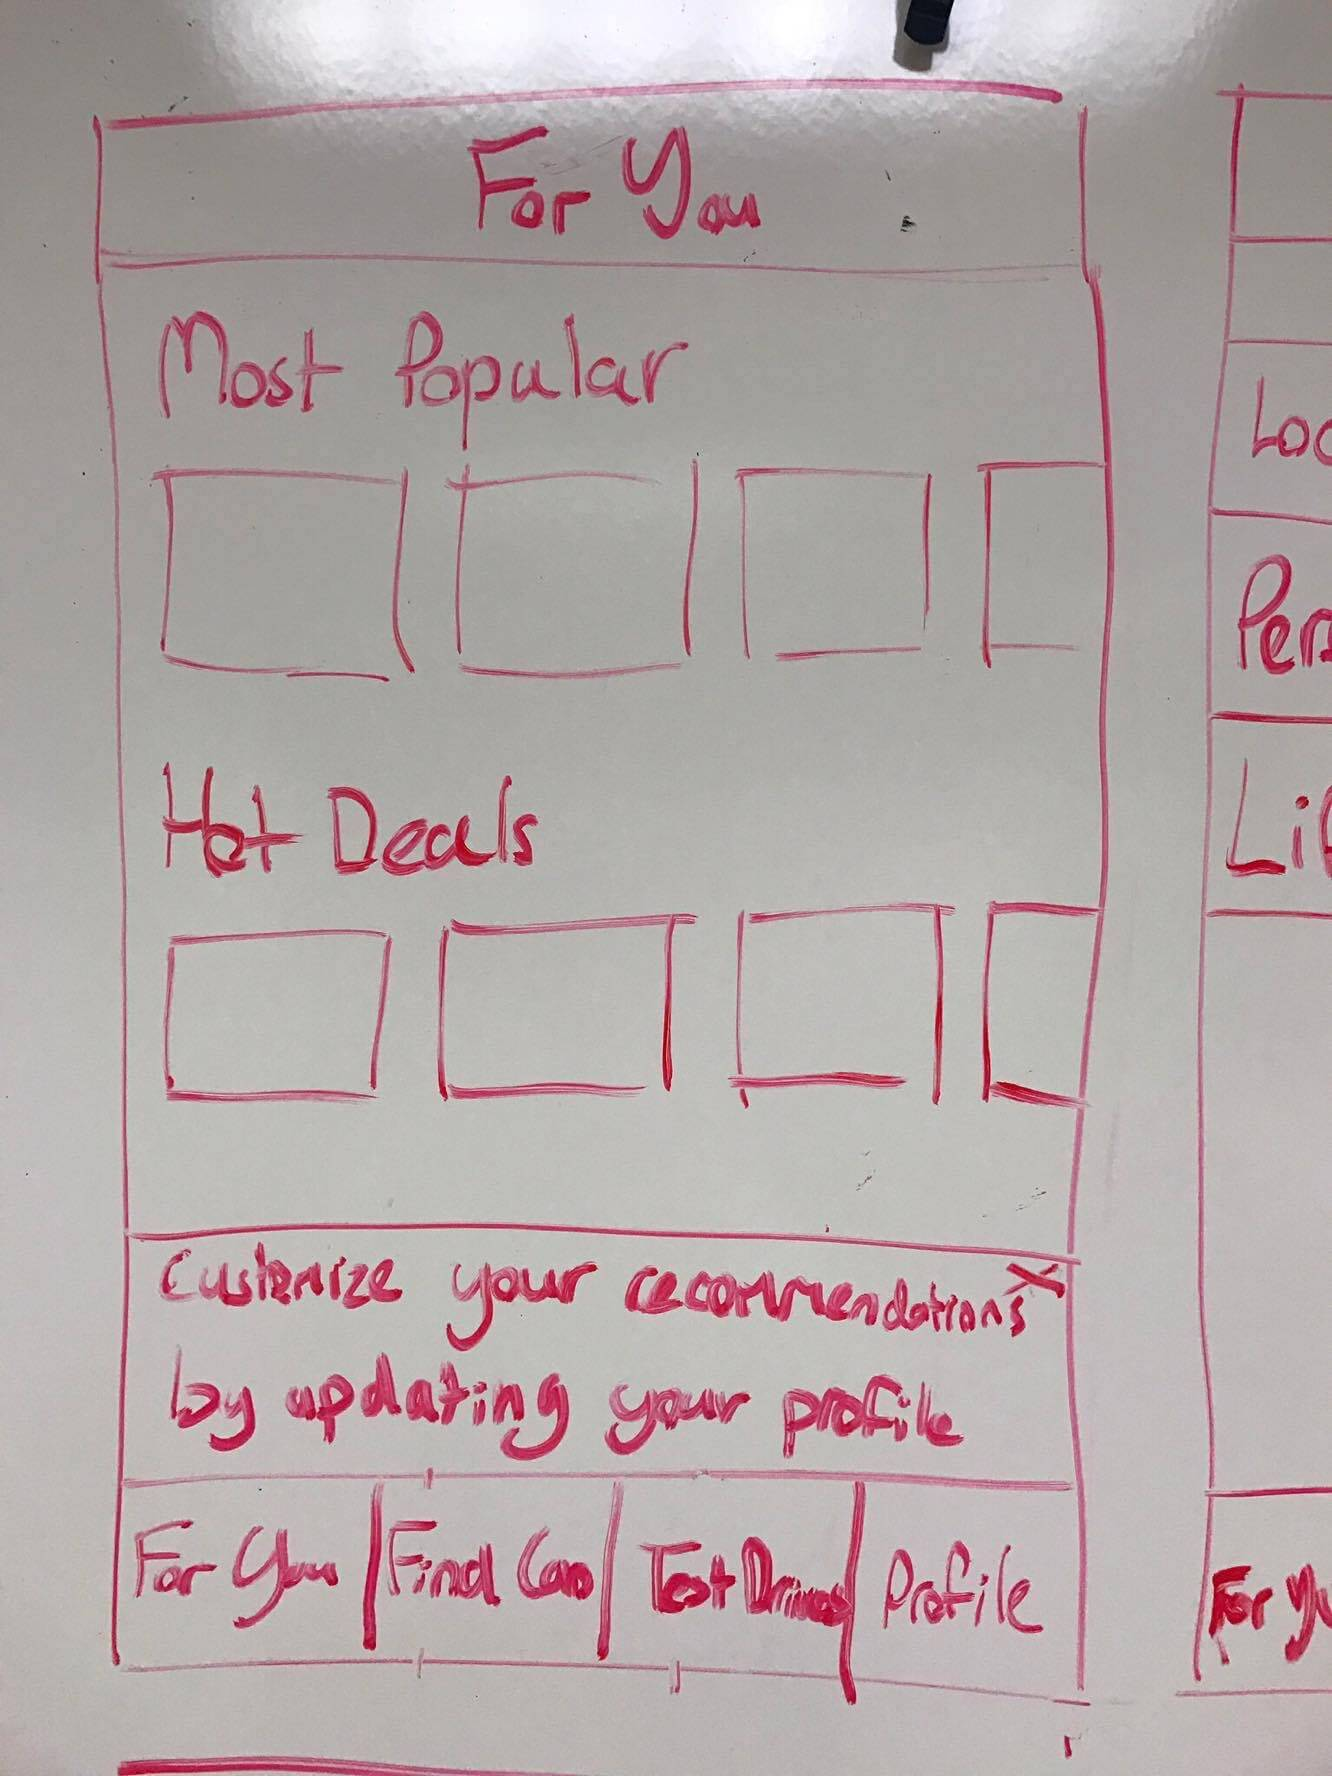 A whiteboard drawing showing the For You page